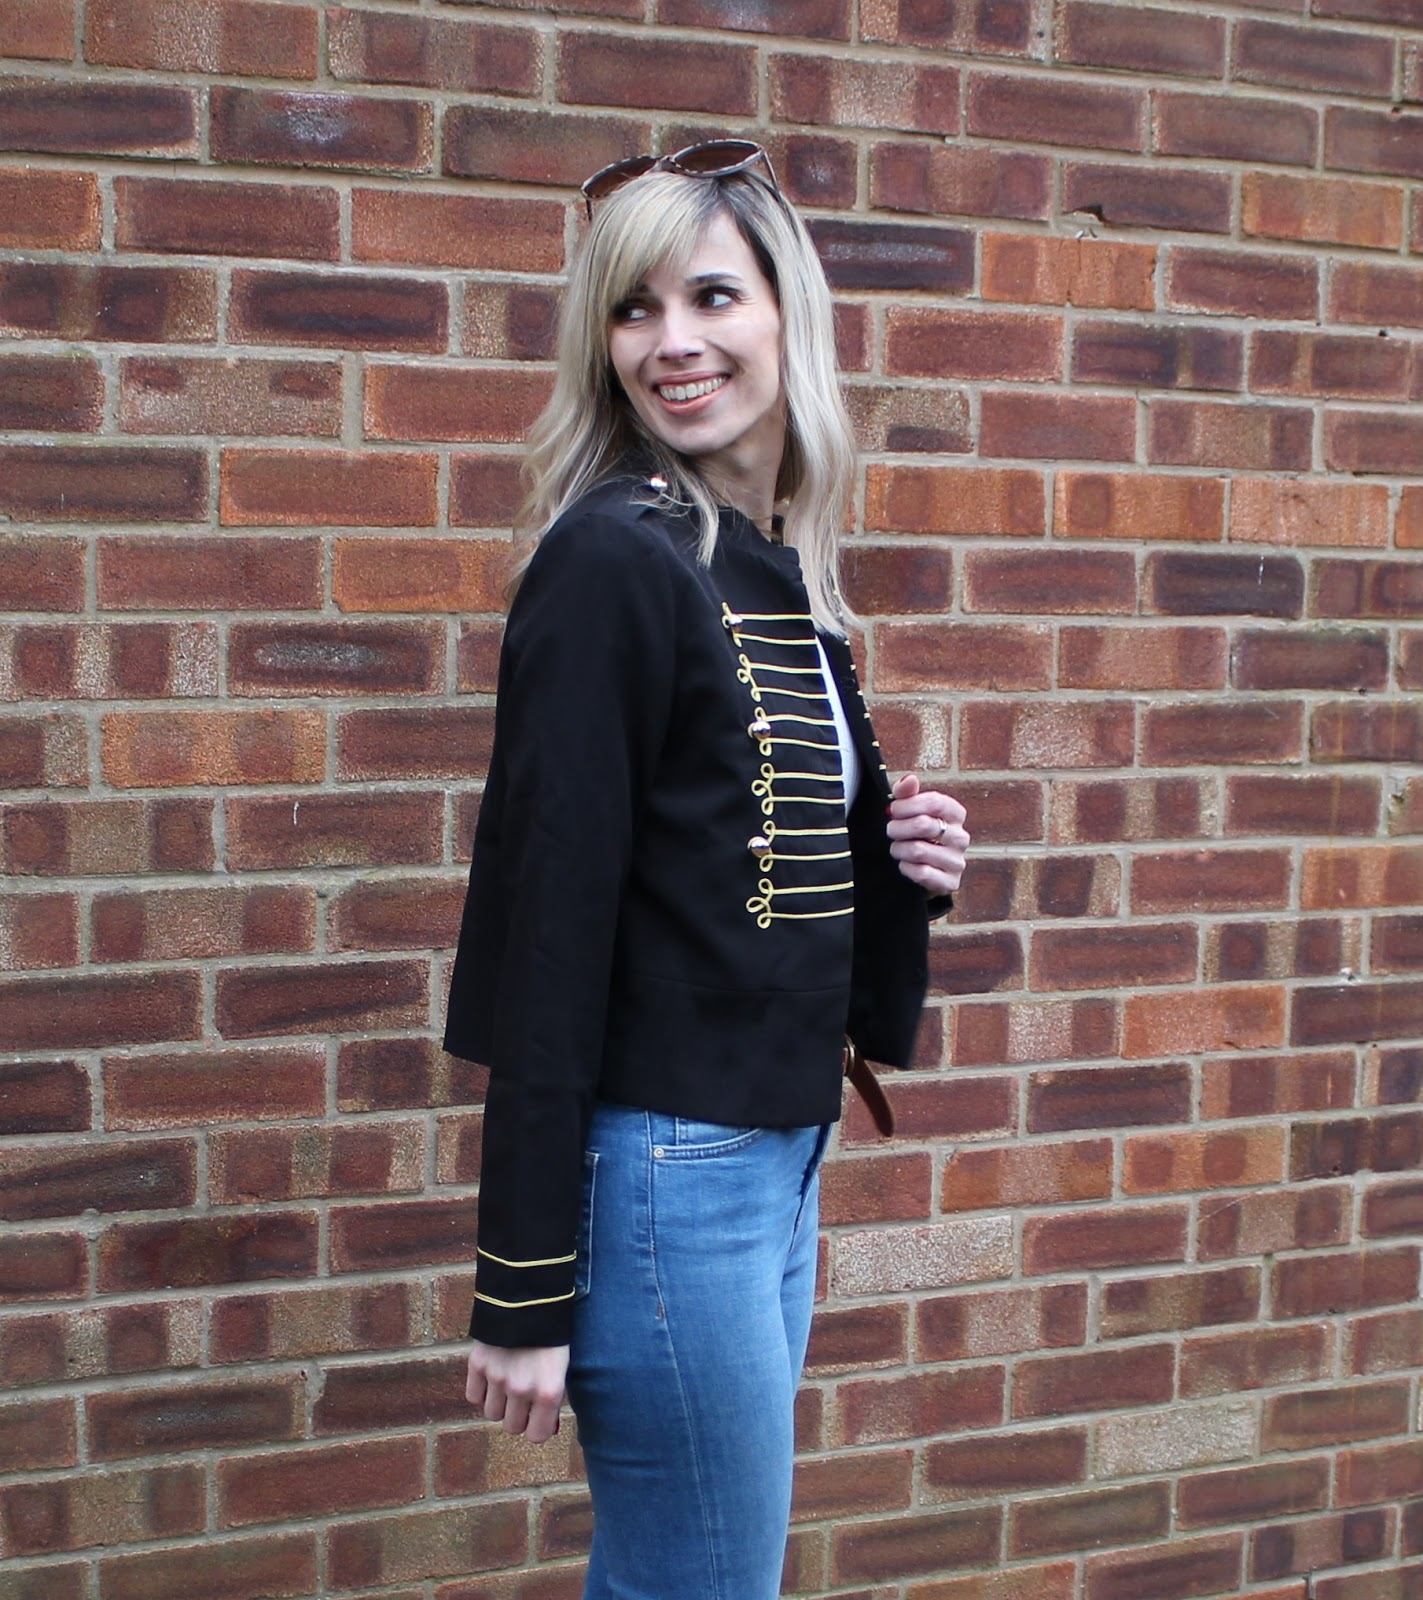 OOTD featuring a cropped military jacket from Shein - 4